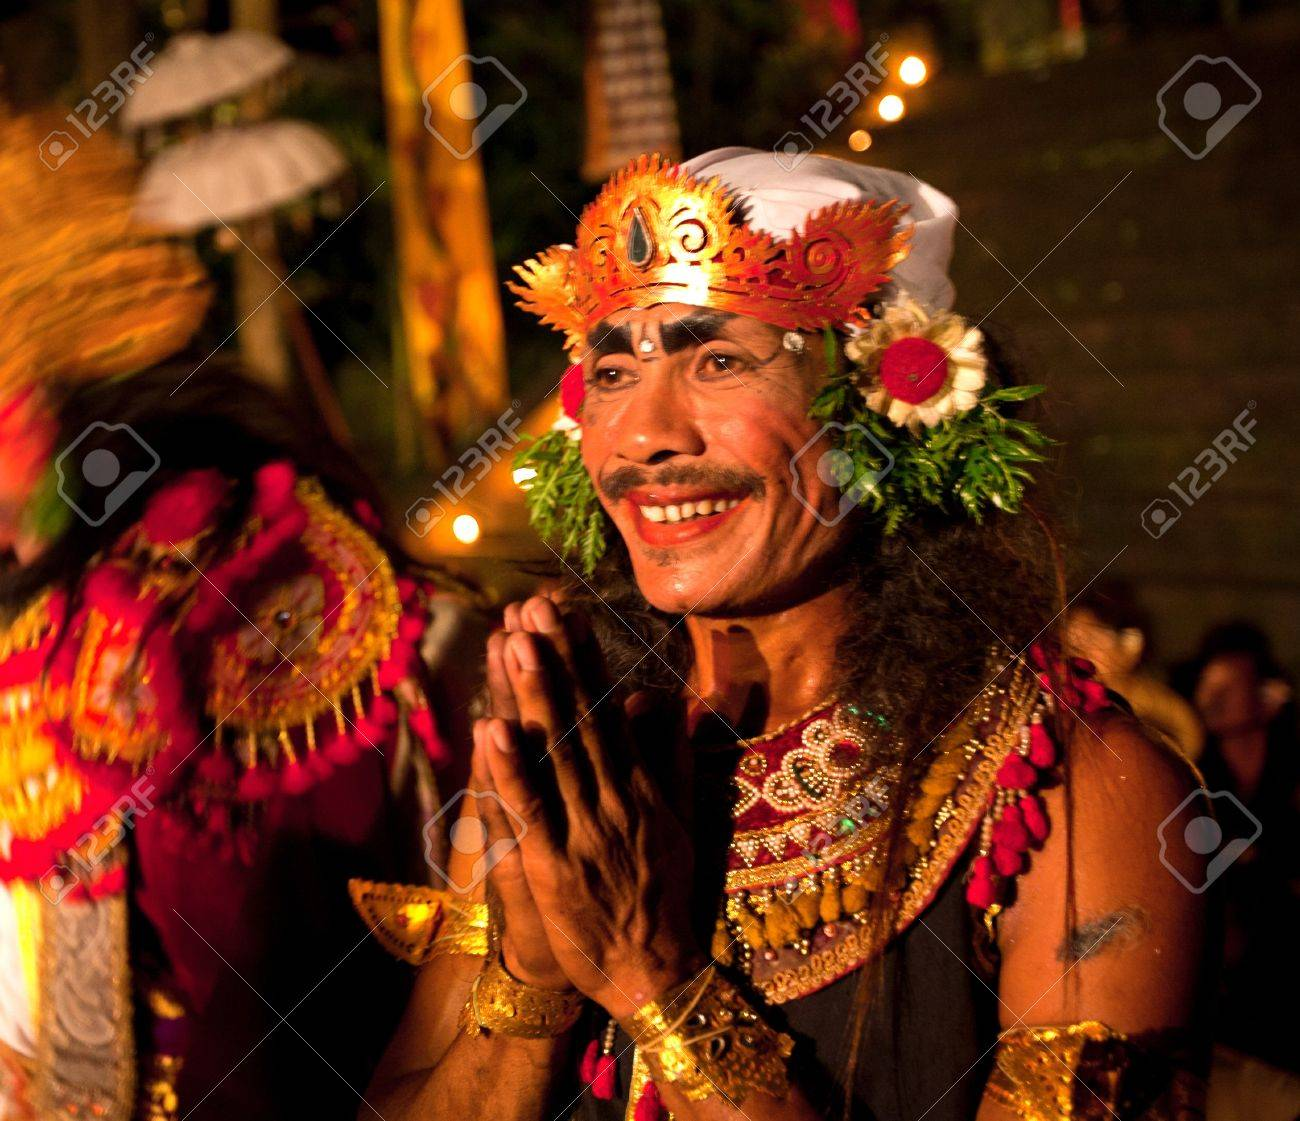 BALI, INDONESIA - APRIL 4: Presentation of traditional balinese Women Kecak Fire Dance show on April 4, 2012 on Bali, Indonesia. Kecak (also known as Ramayana Monkey Chant) is very popular cultural show on Bali. Stock Photo - 13062680